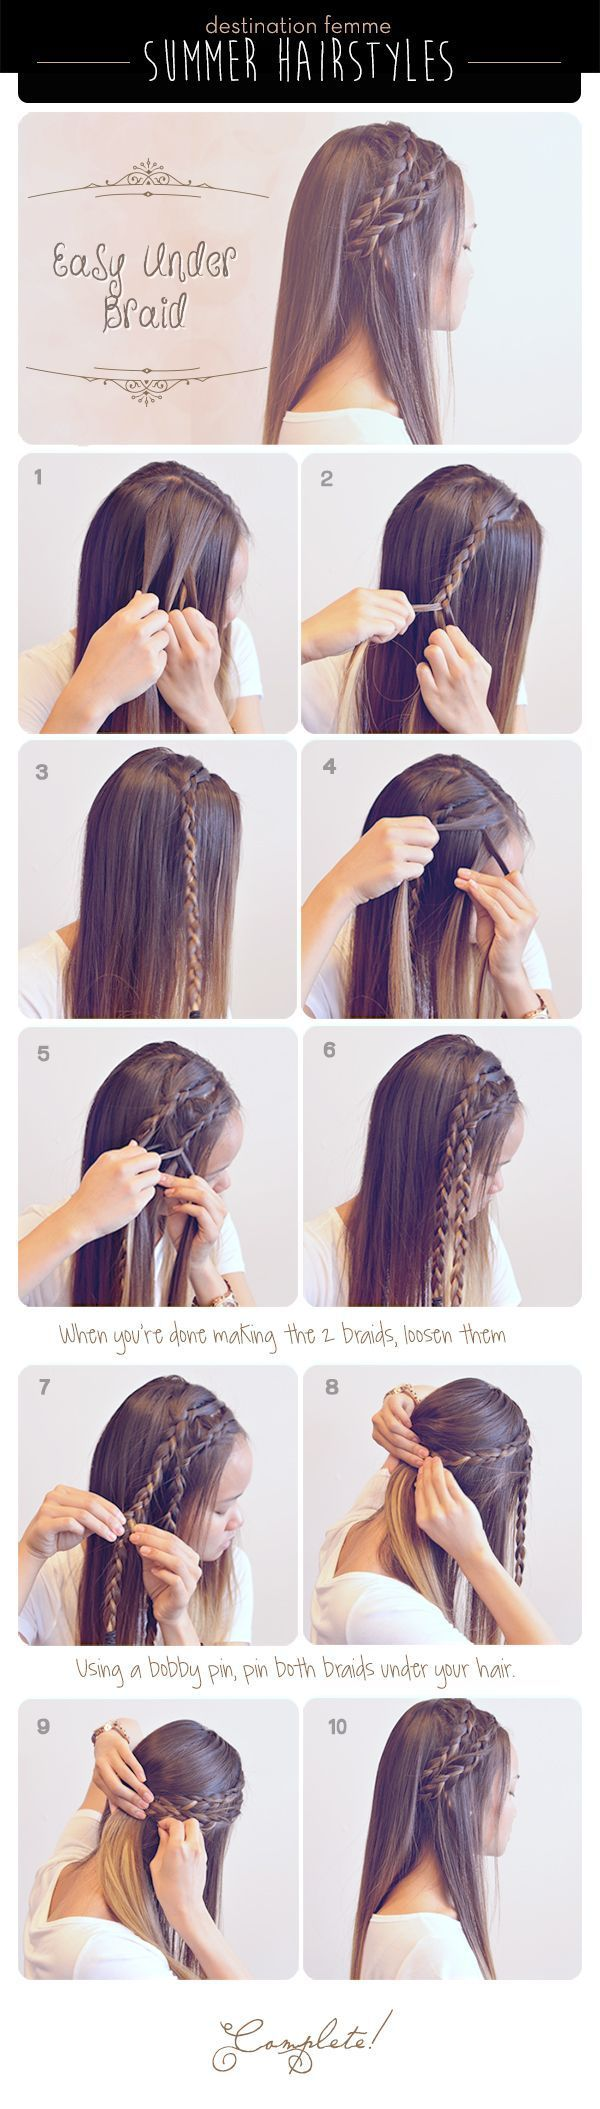 summer braid hairstyle for summer pictures, photos, and images for